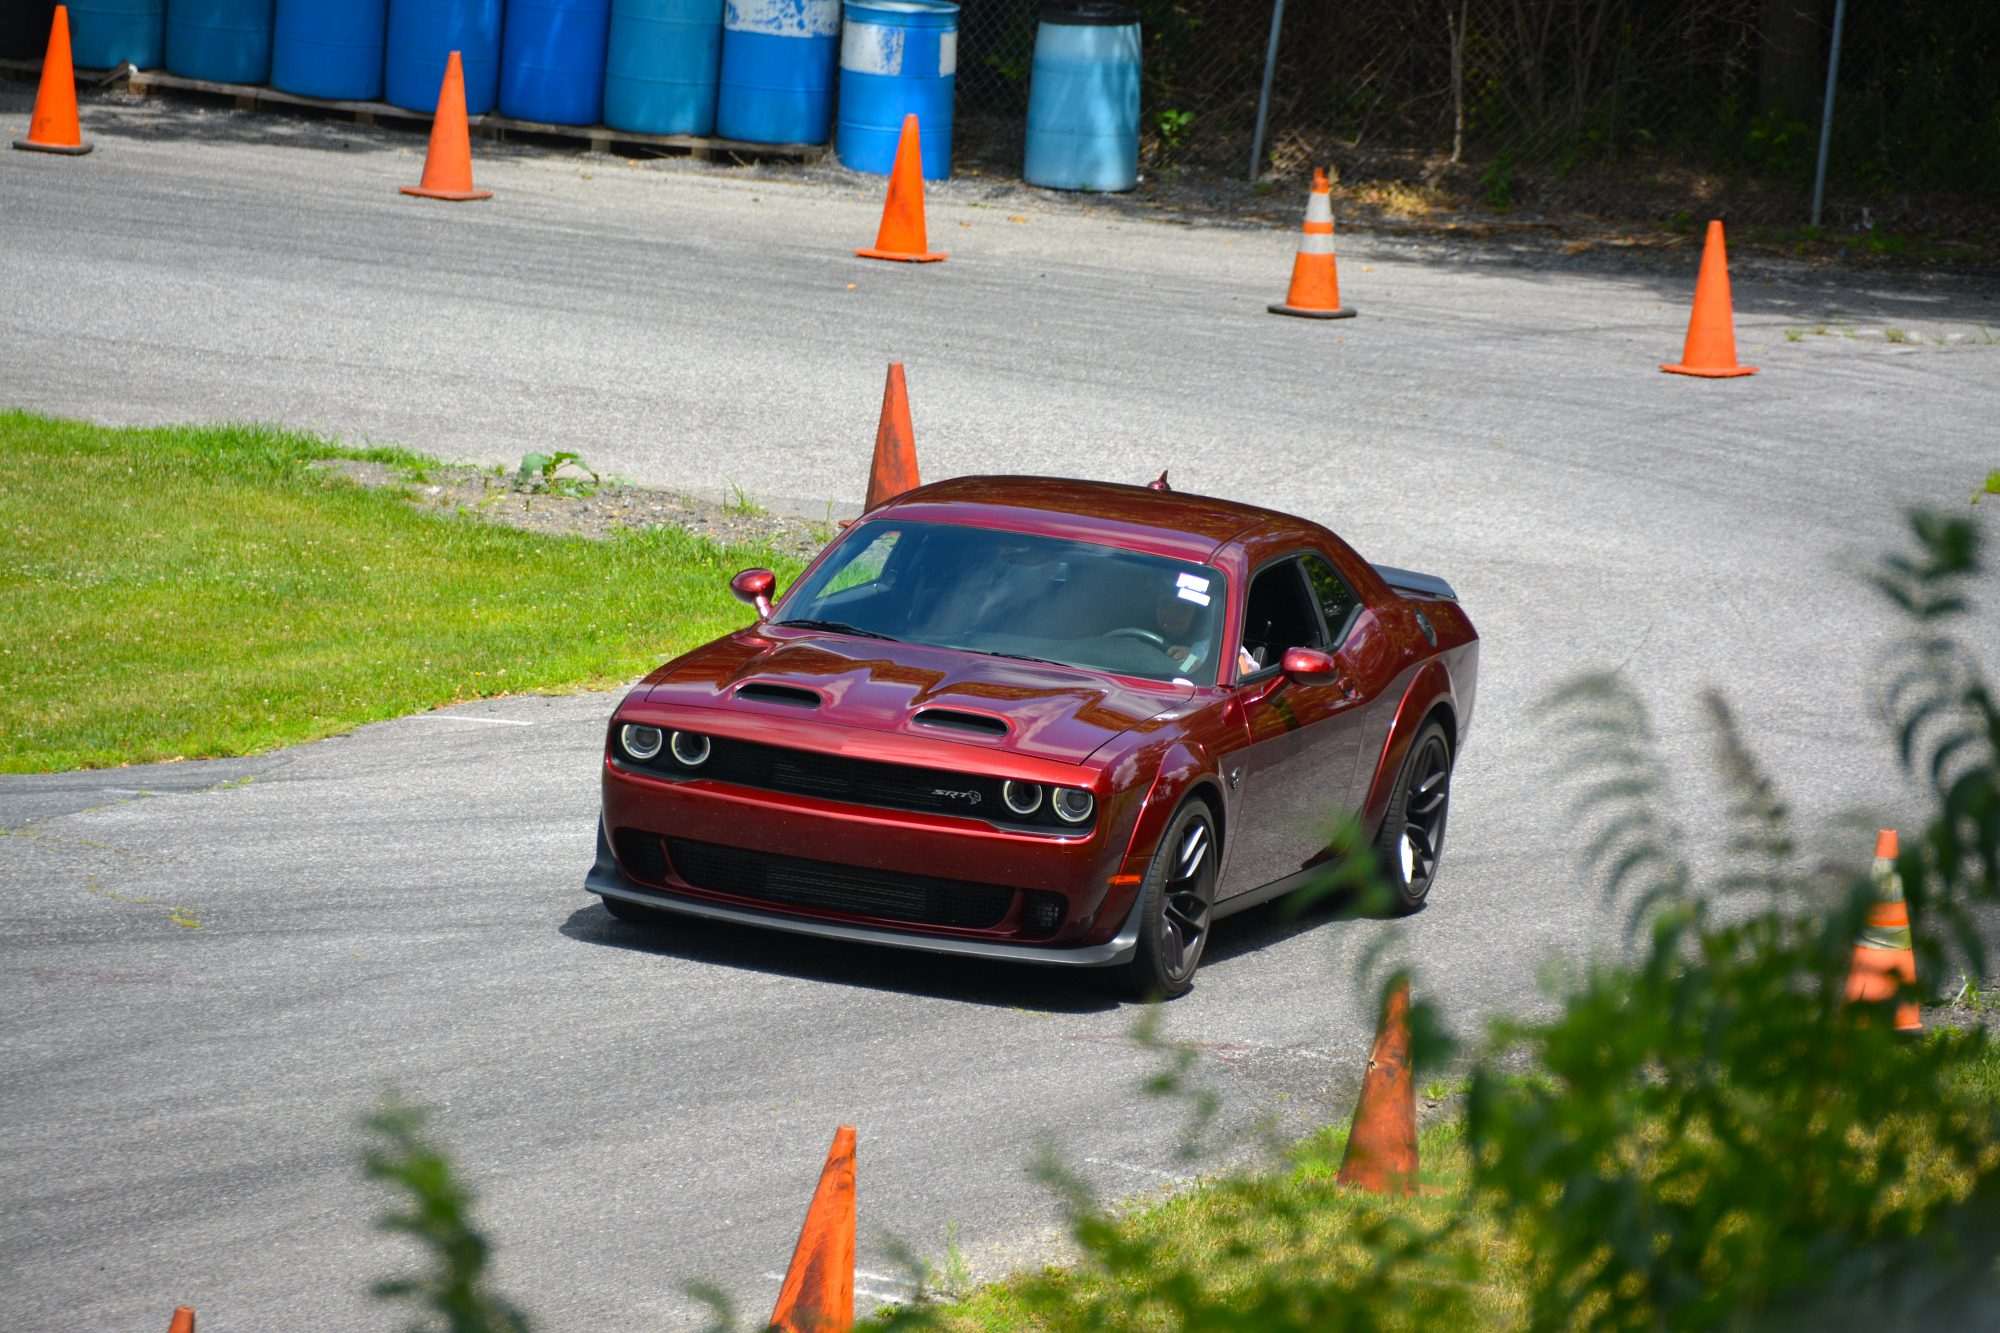 Dodge Challenger driving down a road course